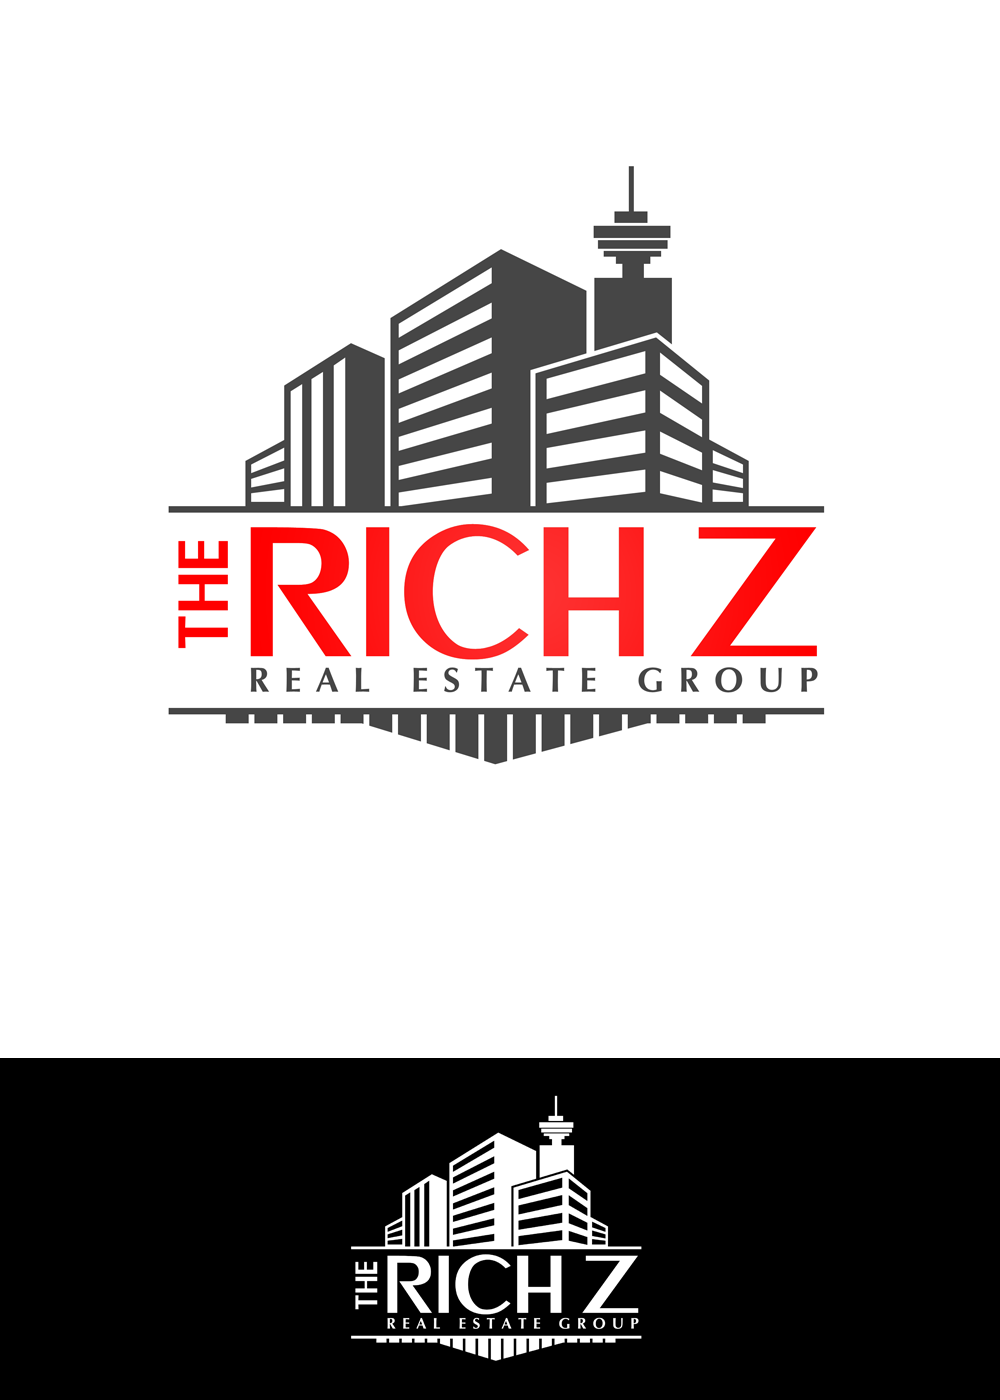 Logo Design by Private User - Entry No. 381 in the Logo Design Contest The Rich Z. Real Estate Group Logo Design.